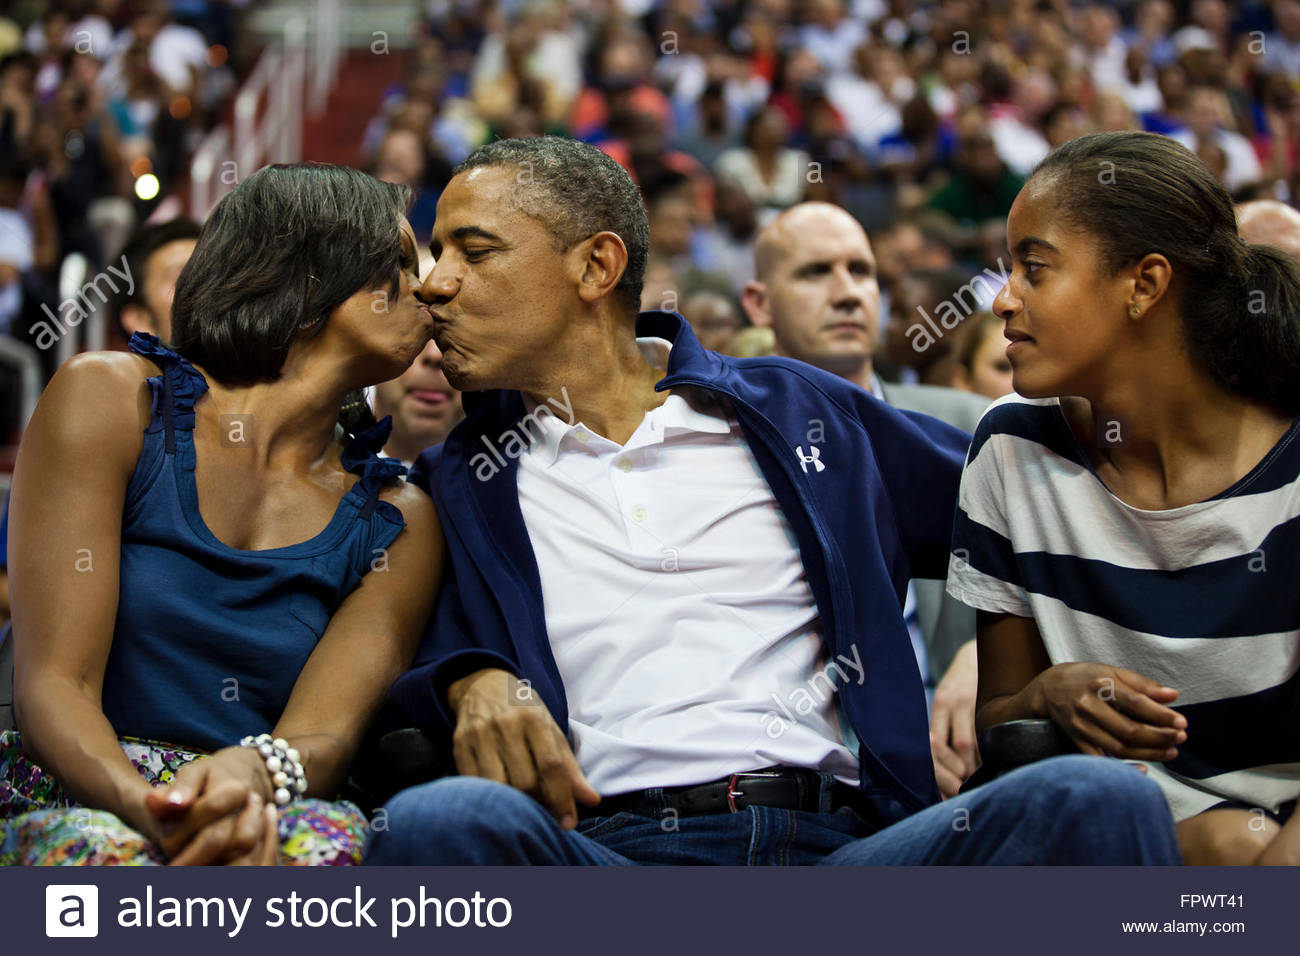 Michelle obama hugs team usa basketball wallpaper - how to create image file from sd card